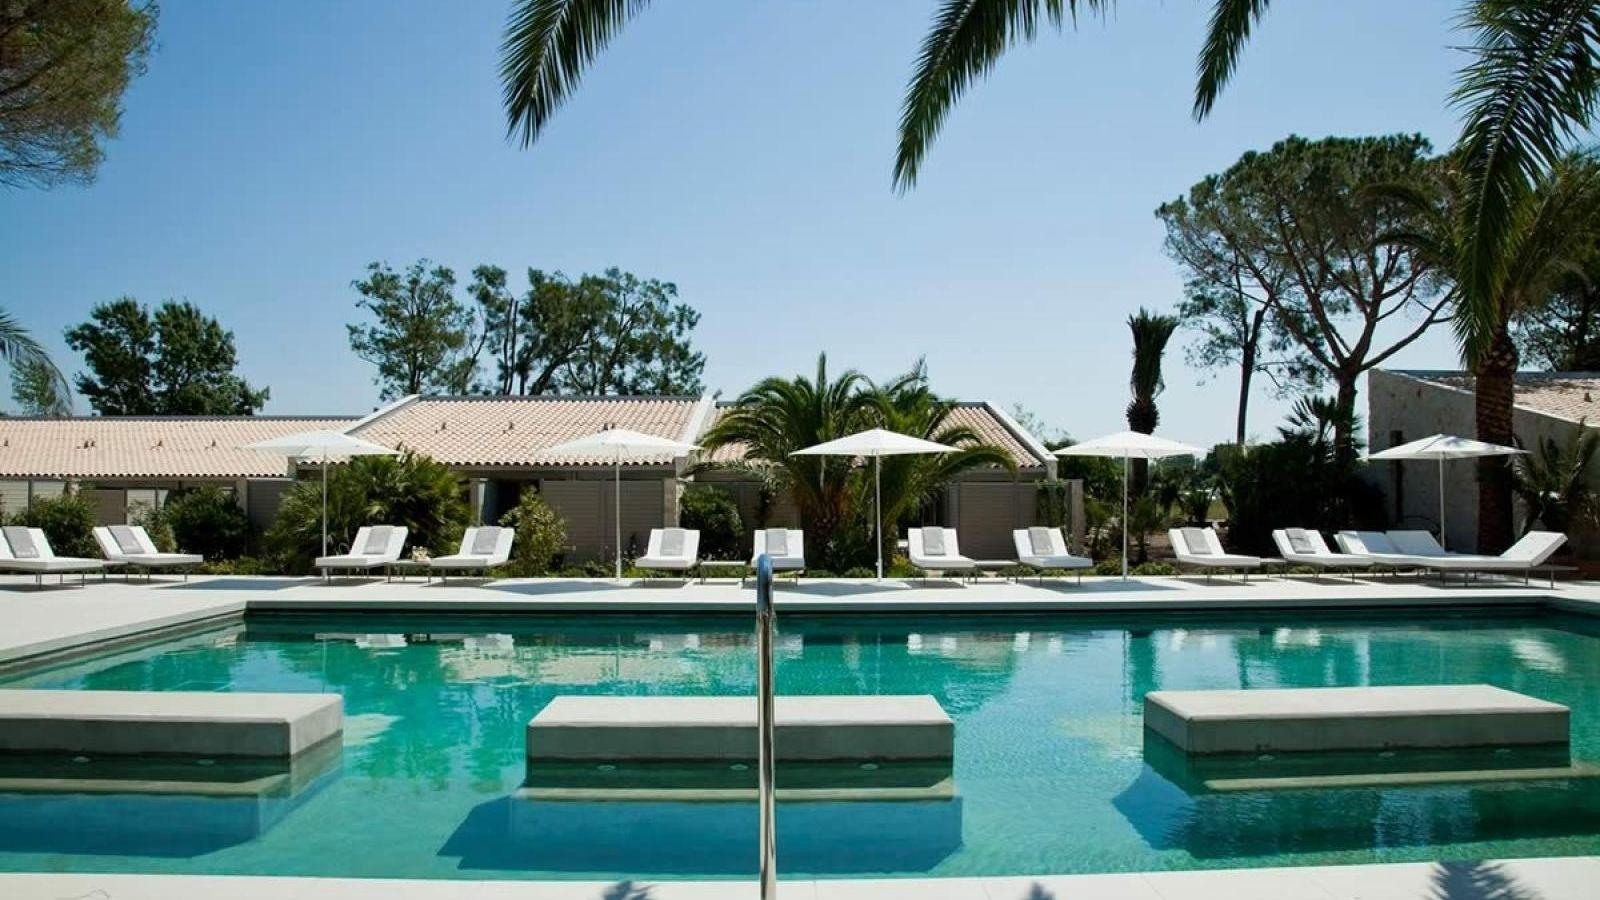 Win a luxury stay with the Sezz- Saint-Tropez Facebook contest